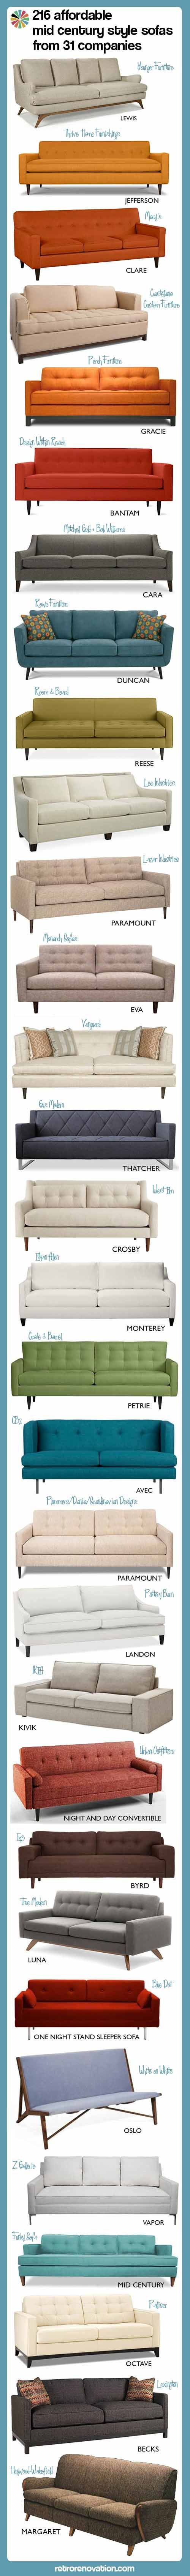 MID CENTURY MODERN COUCHES - 216 affordable mid century modern style sofas — from 31 companies